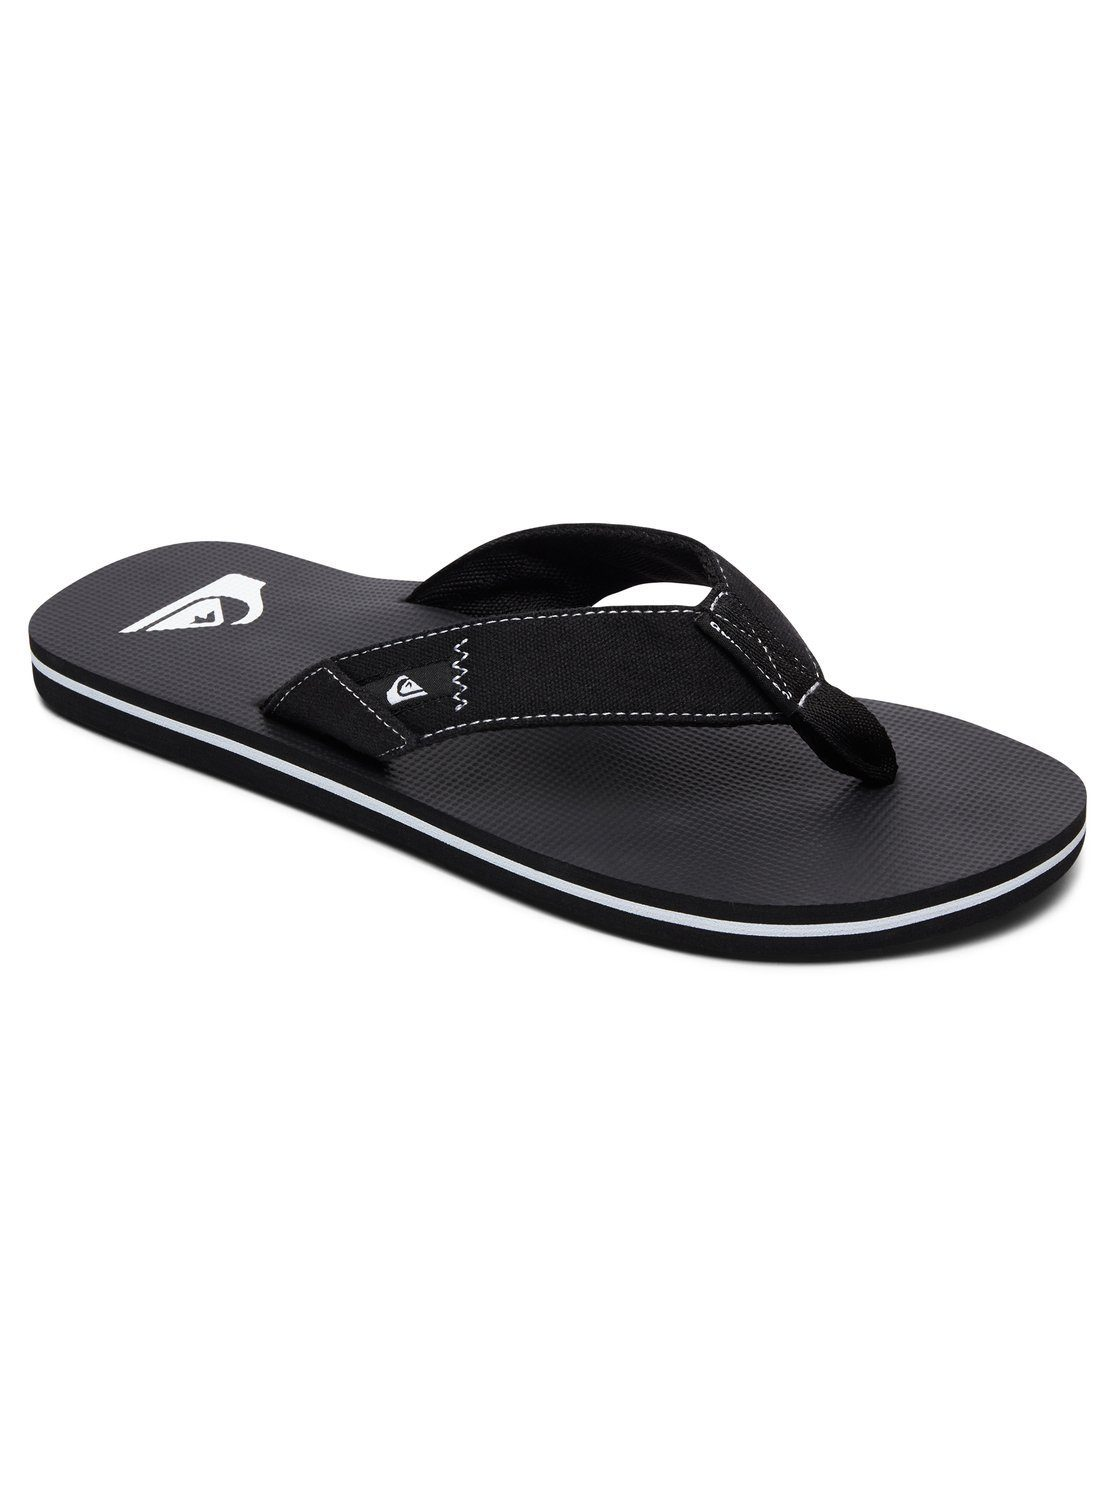 Quiksilver Sandalen Molokai Abyss online kaufen  Black#ft5_slash#black#ft5_slash#white